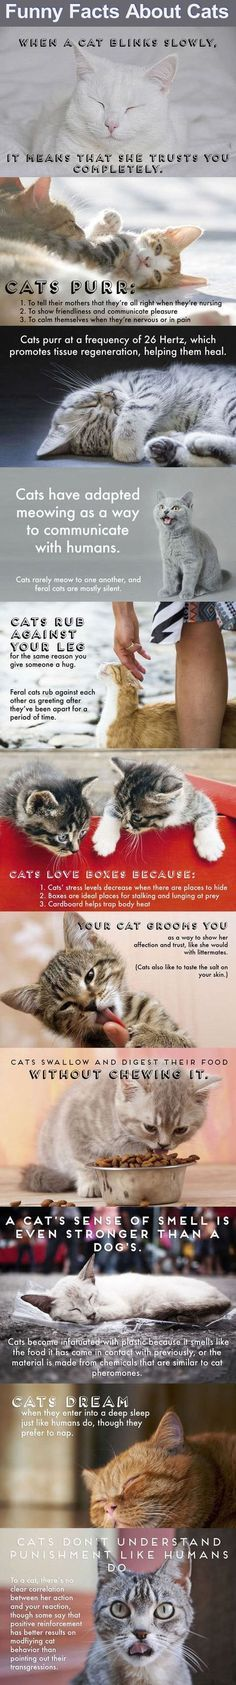 Funny Cat Facts Pictures, Photos, and Images for Facebook, Tumblr, Pinterest, and Twitter